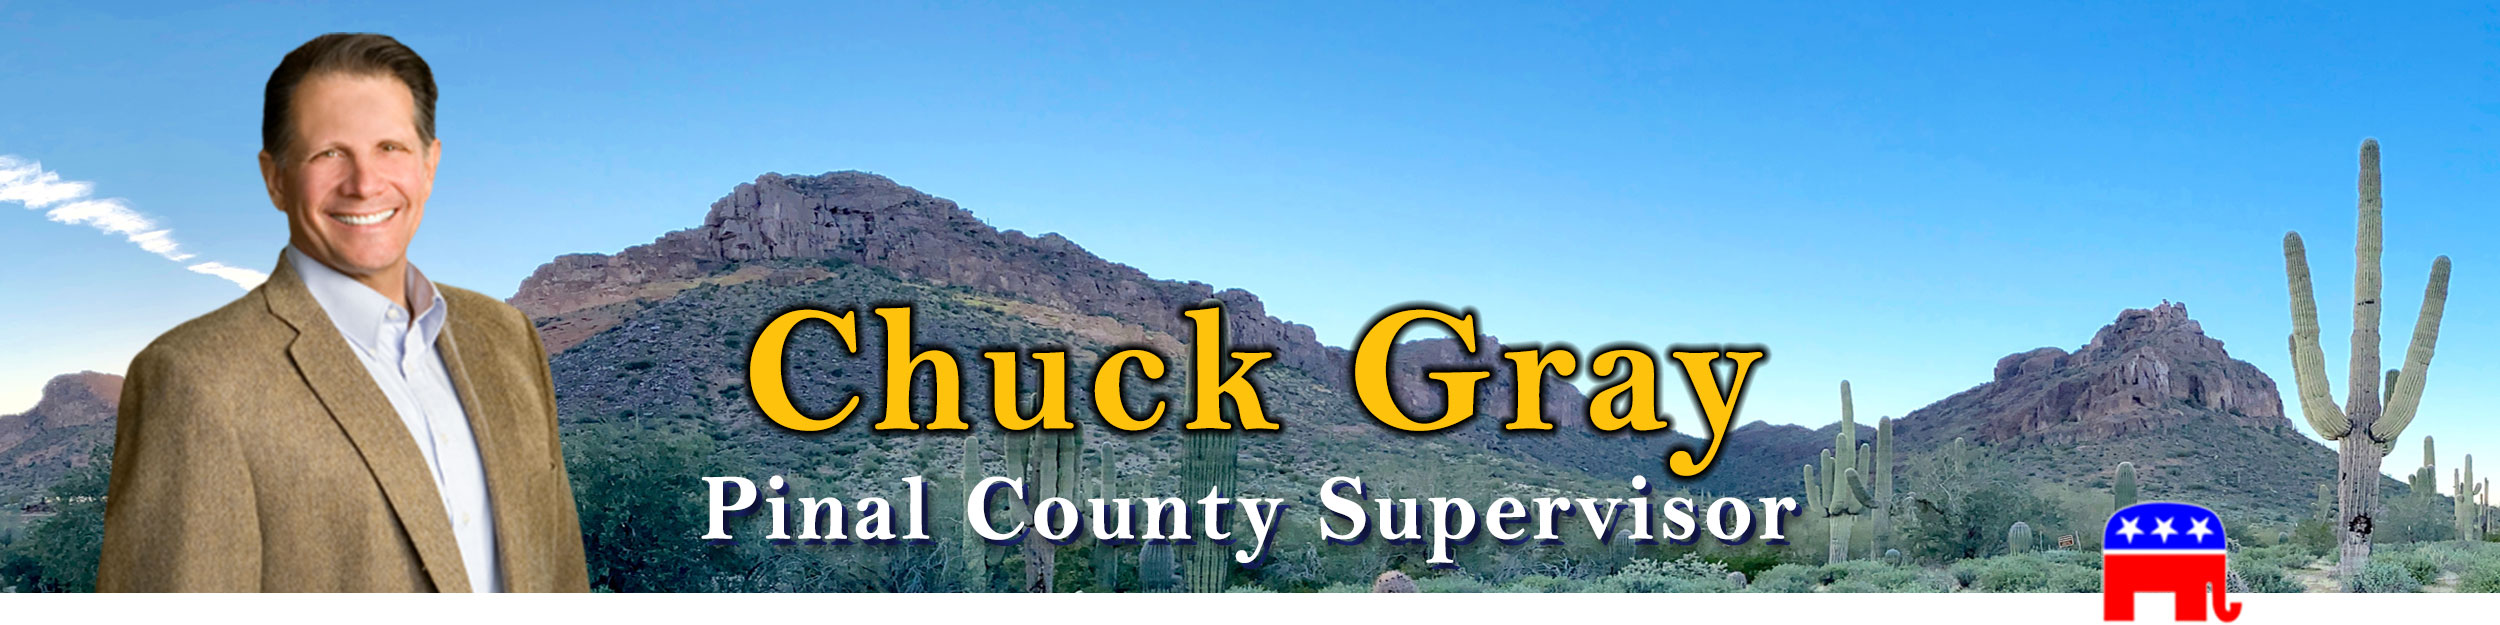 Chuck Gray for Pinal County Supervisor